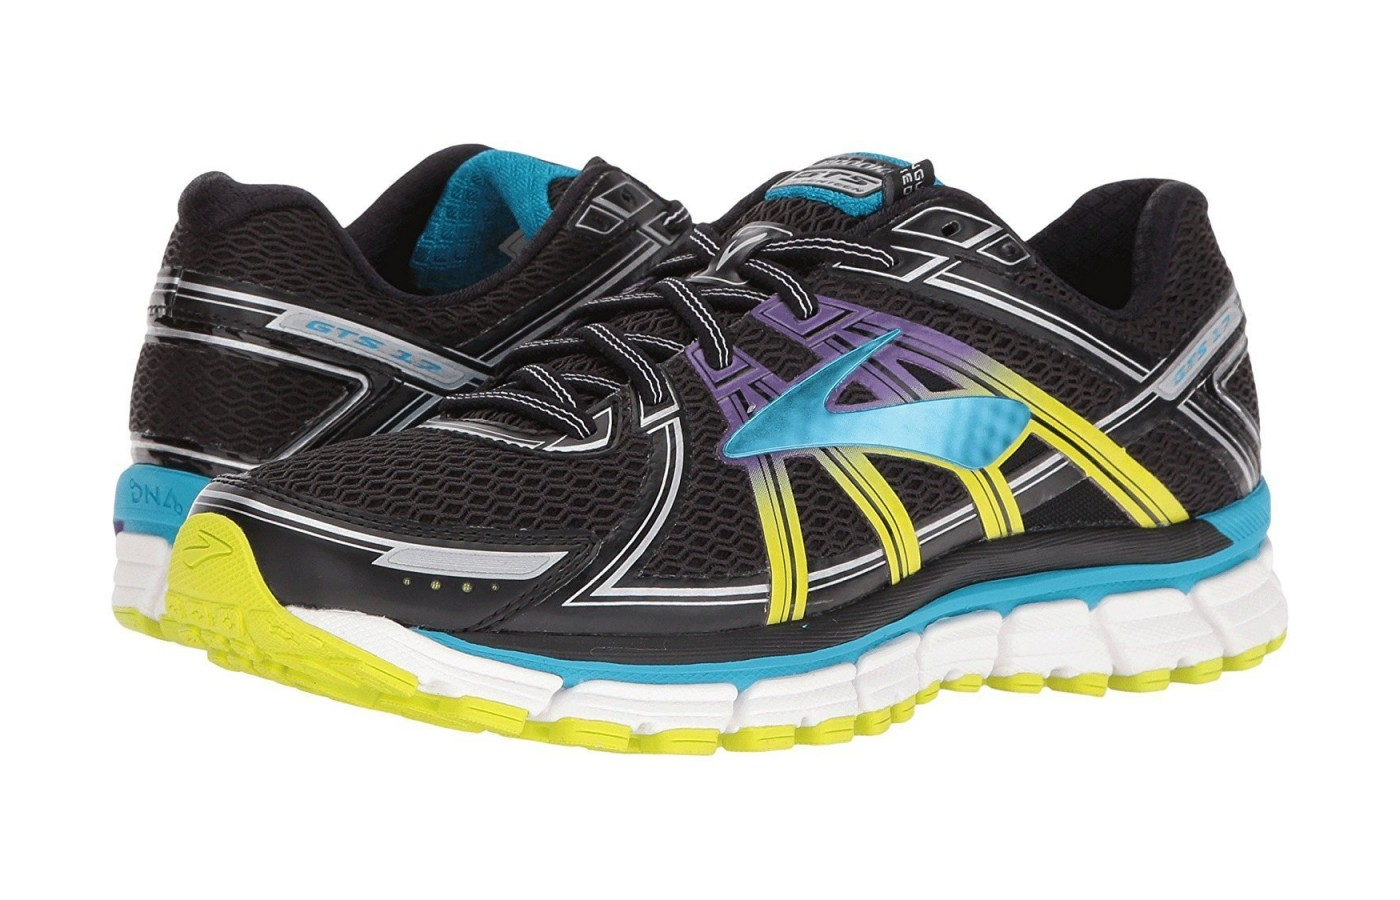 Brooks Adrenaline GTS 17 pair